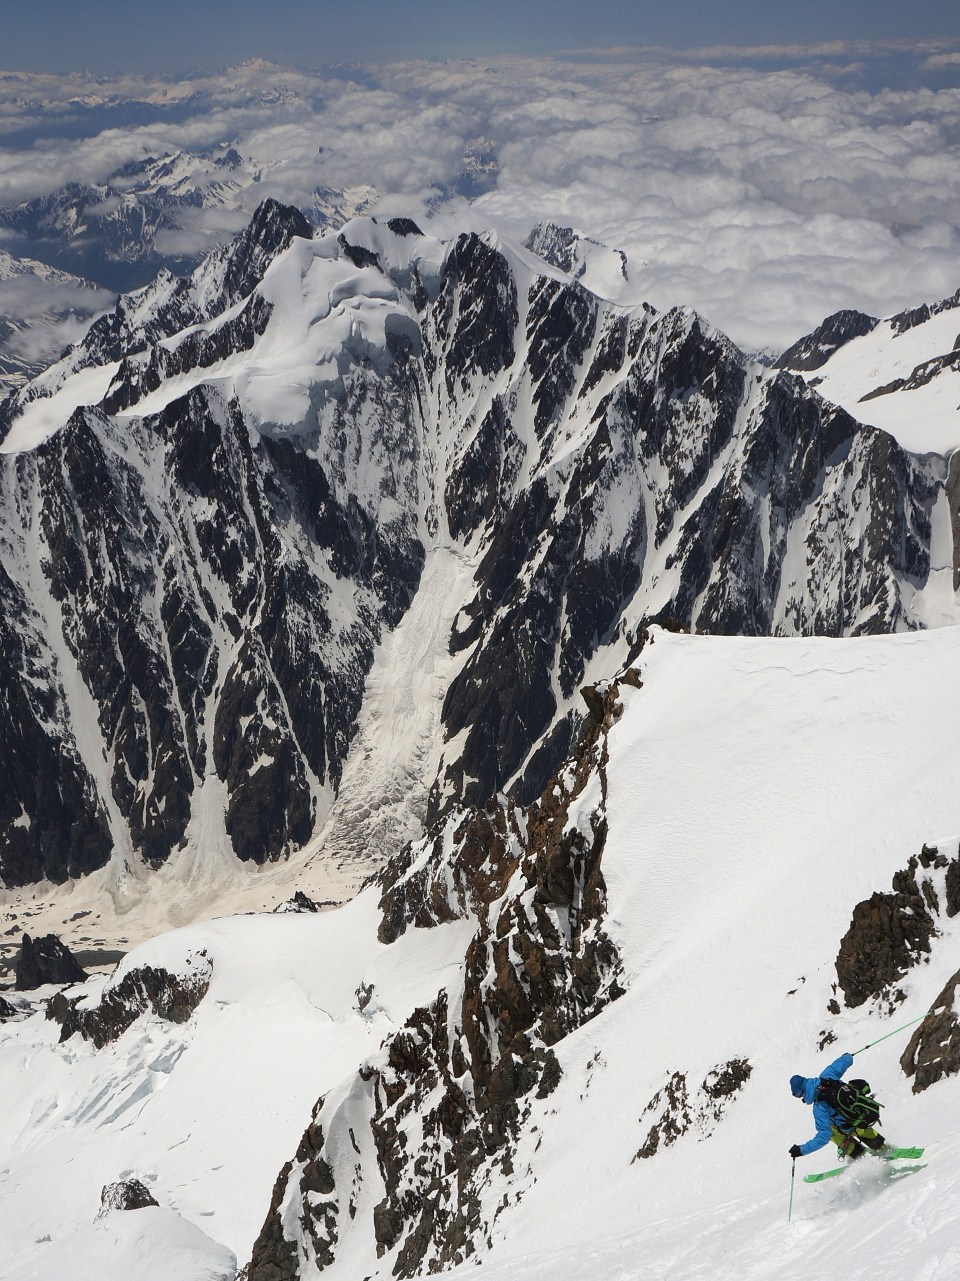 ski model : navis freebird Ross Hewitt on the West Face. Photo ©Guilhem Martin Saint Leon